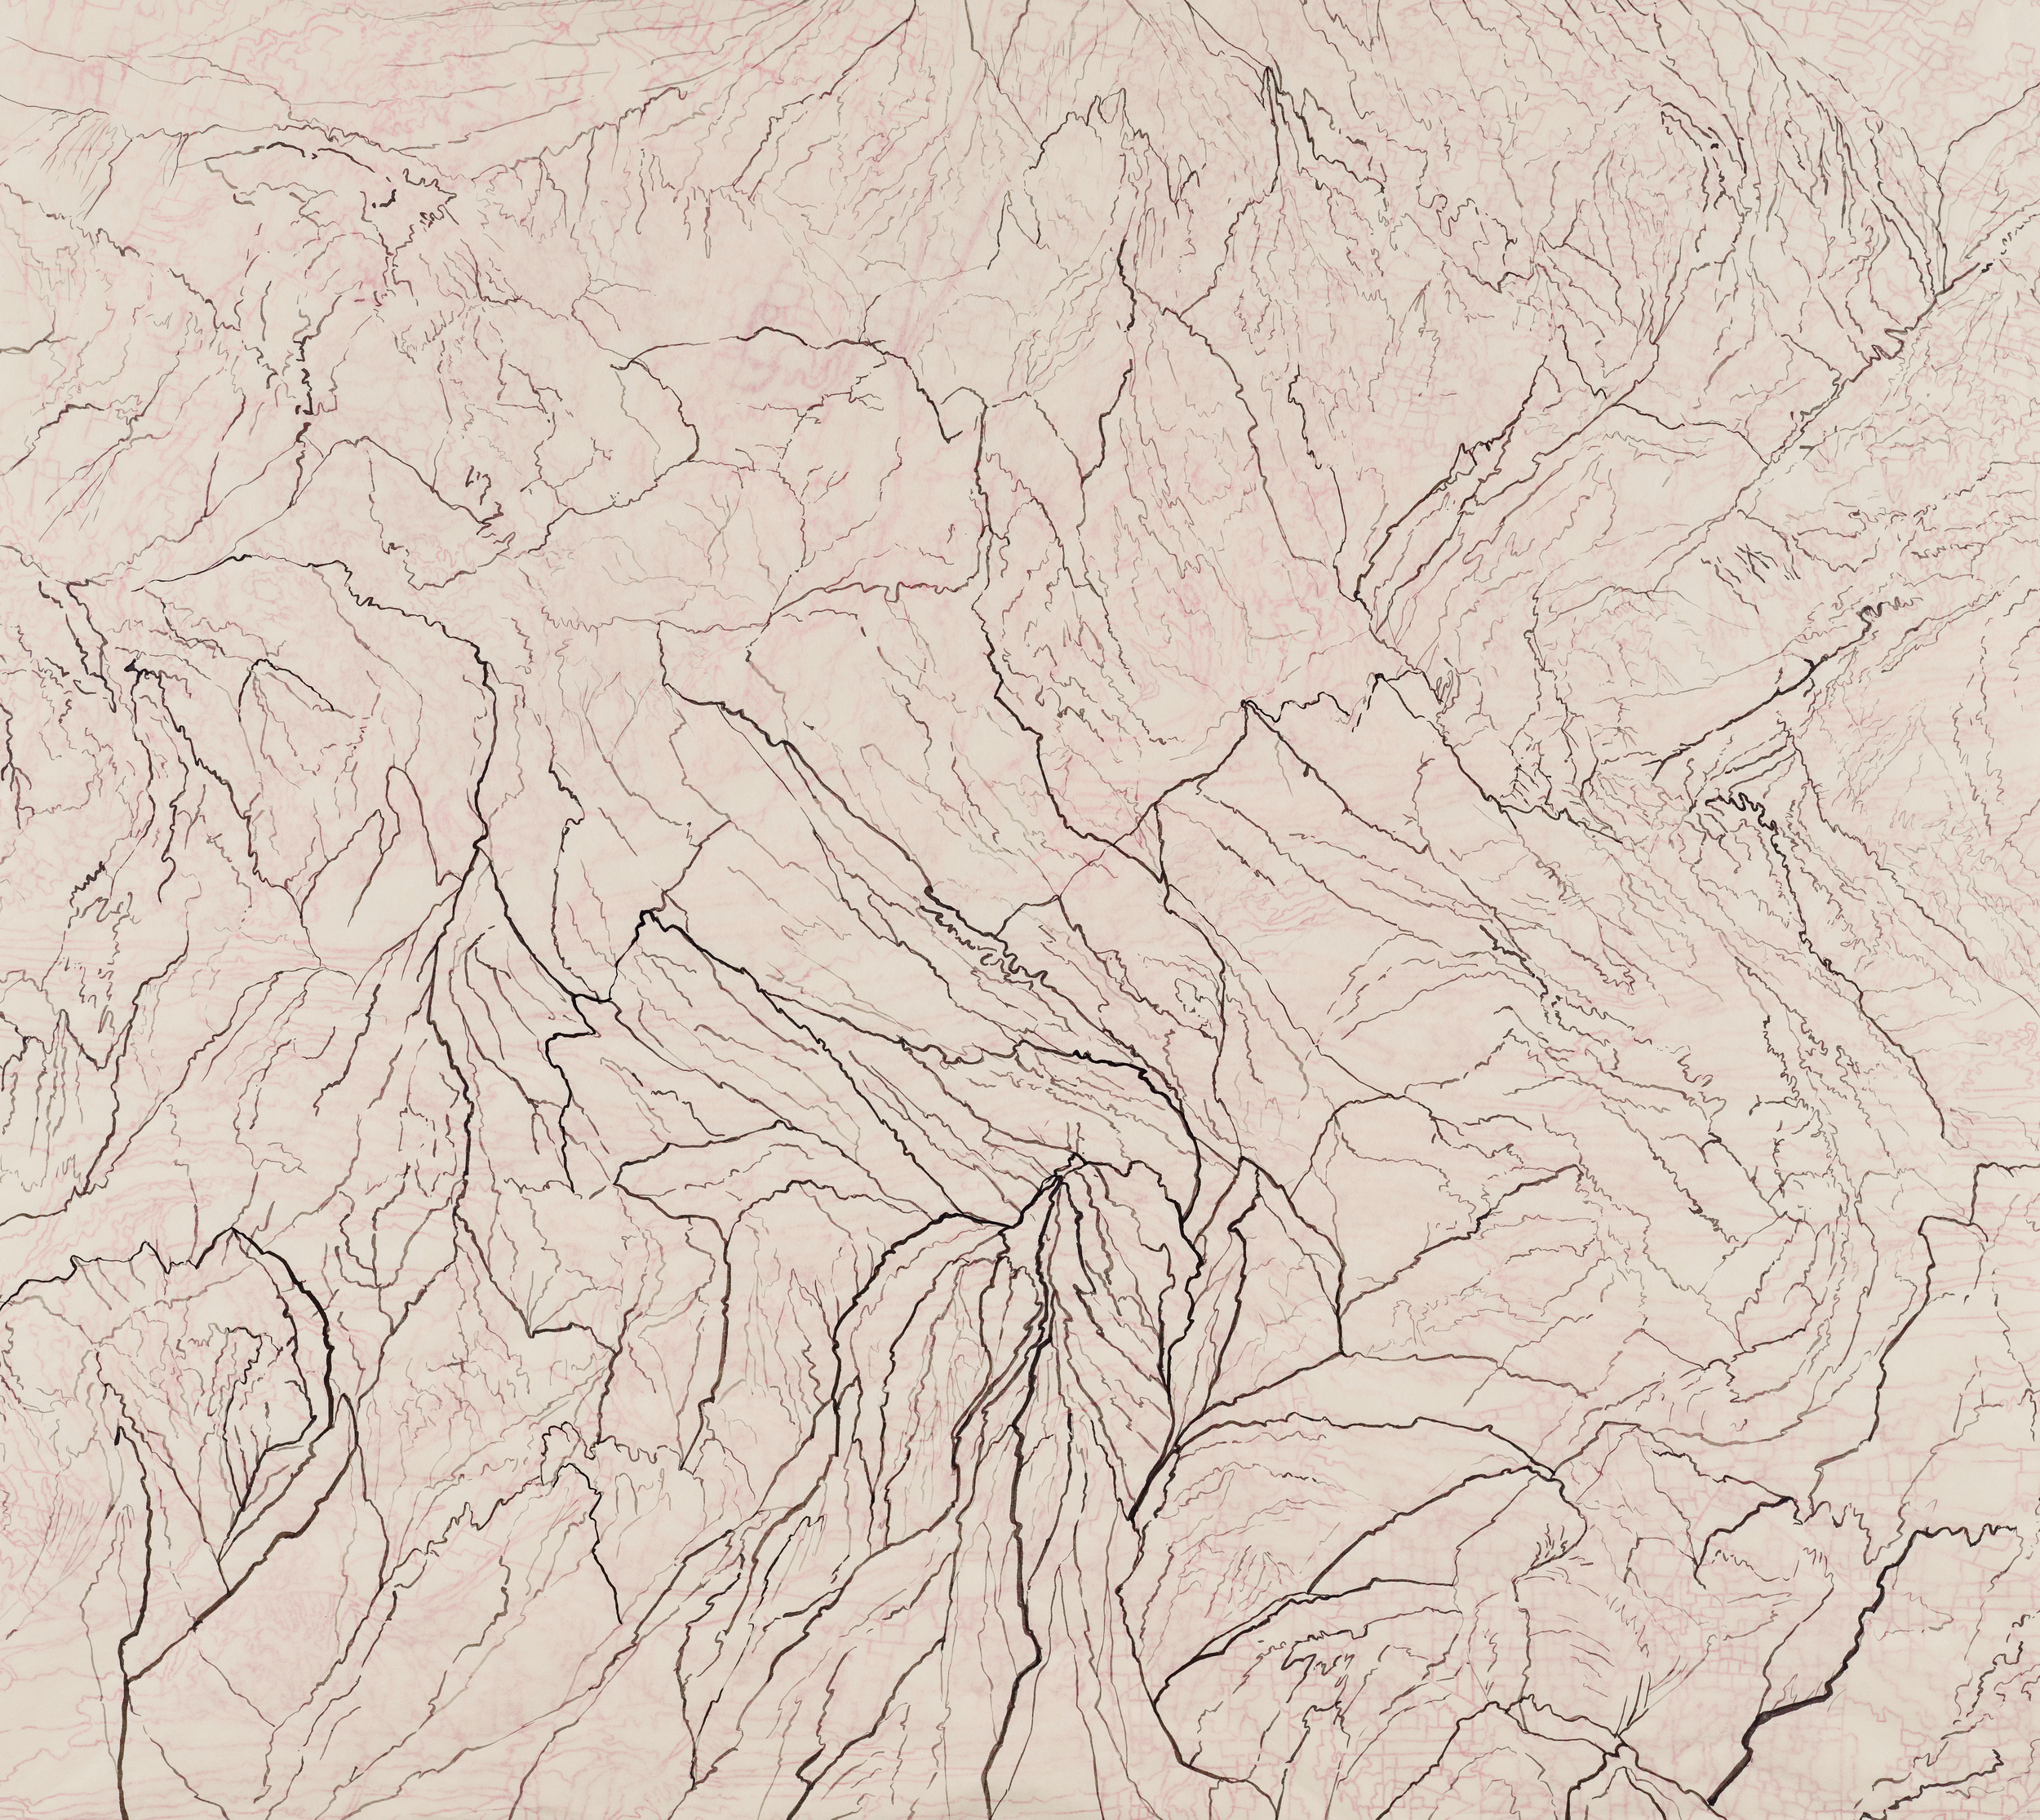 """Untitled VII, 2013   Brush and ink onkozo shi in twolayers   43"""" X 45"""""""